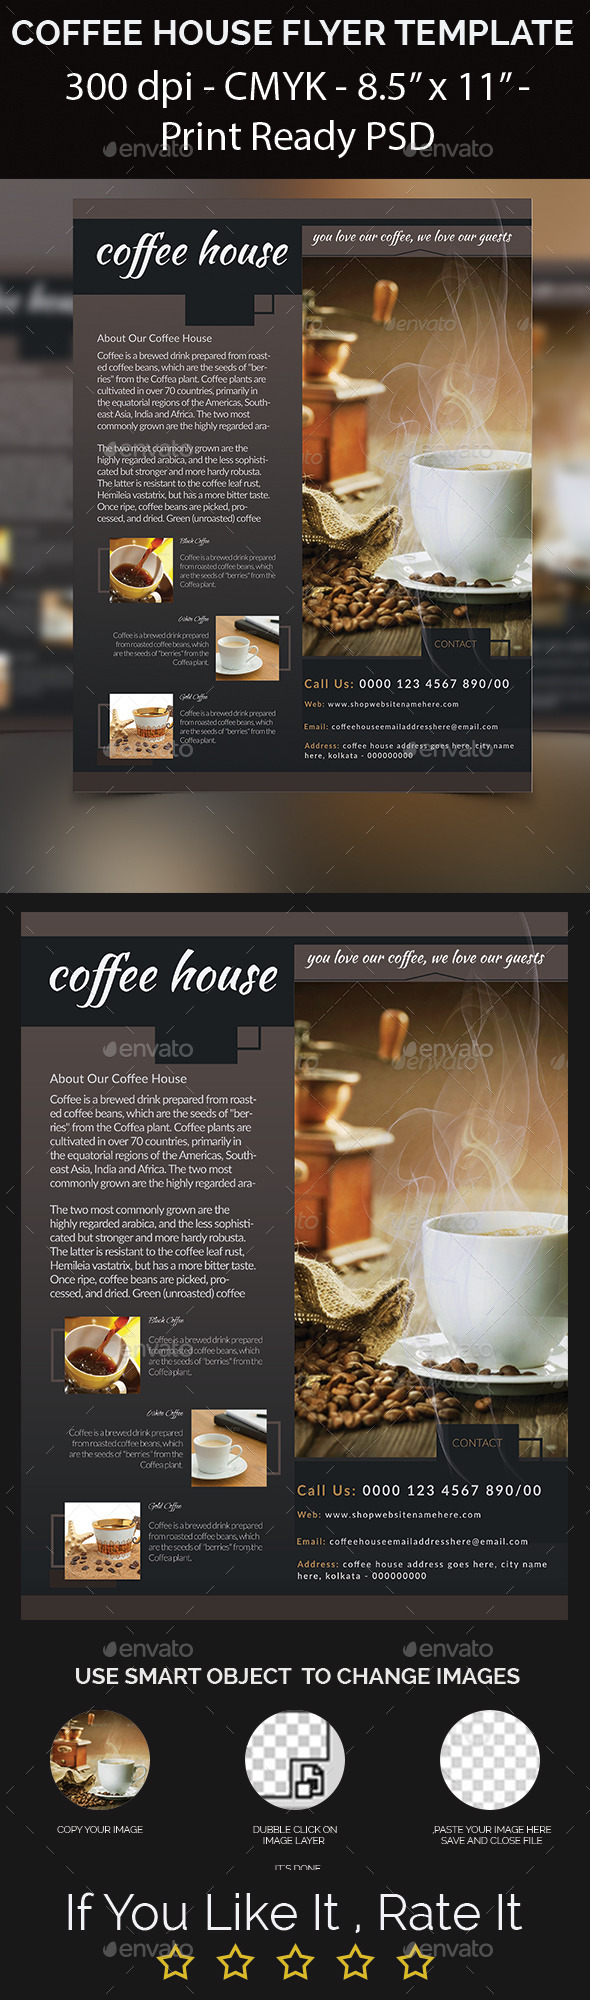 Coffee House Flyer Template - Corporate Flyers